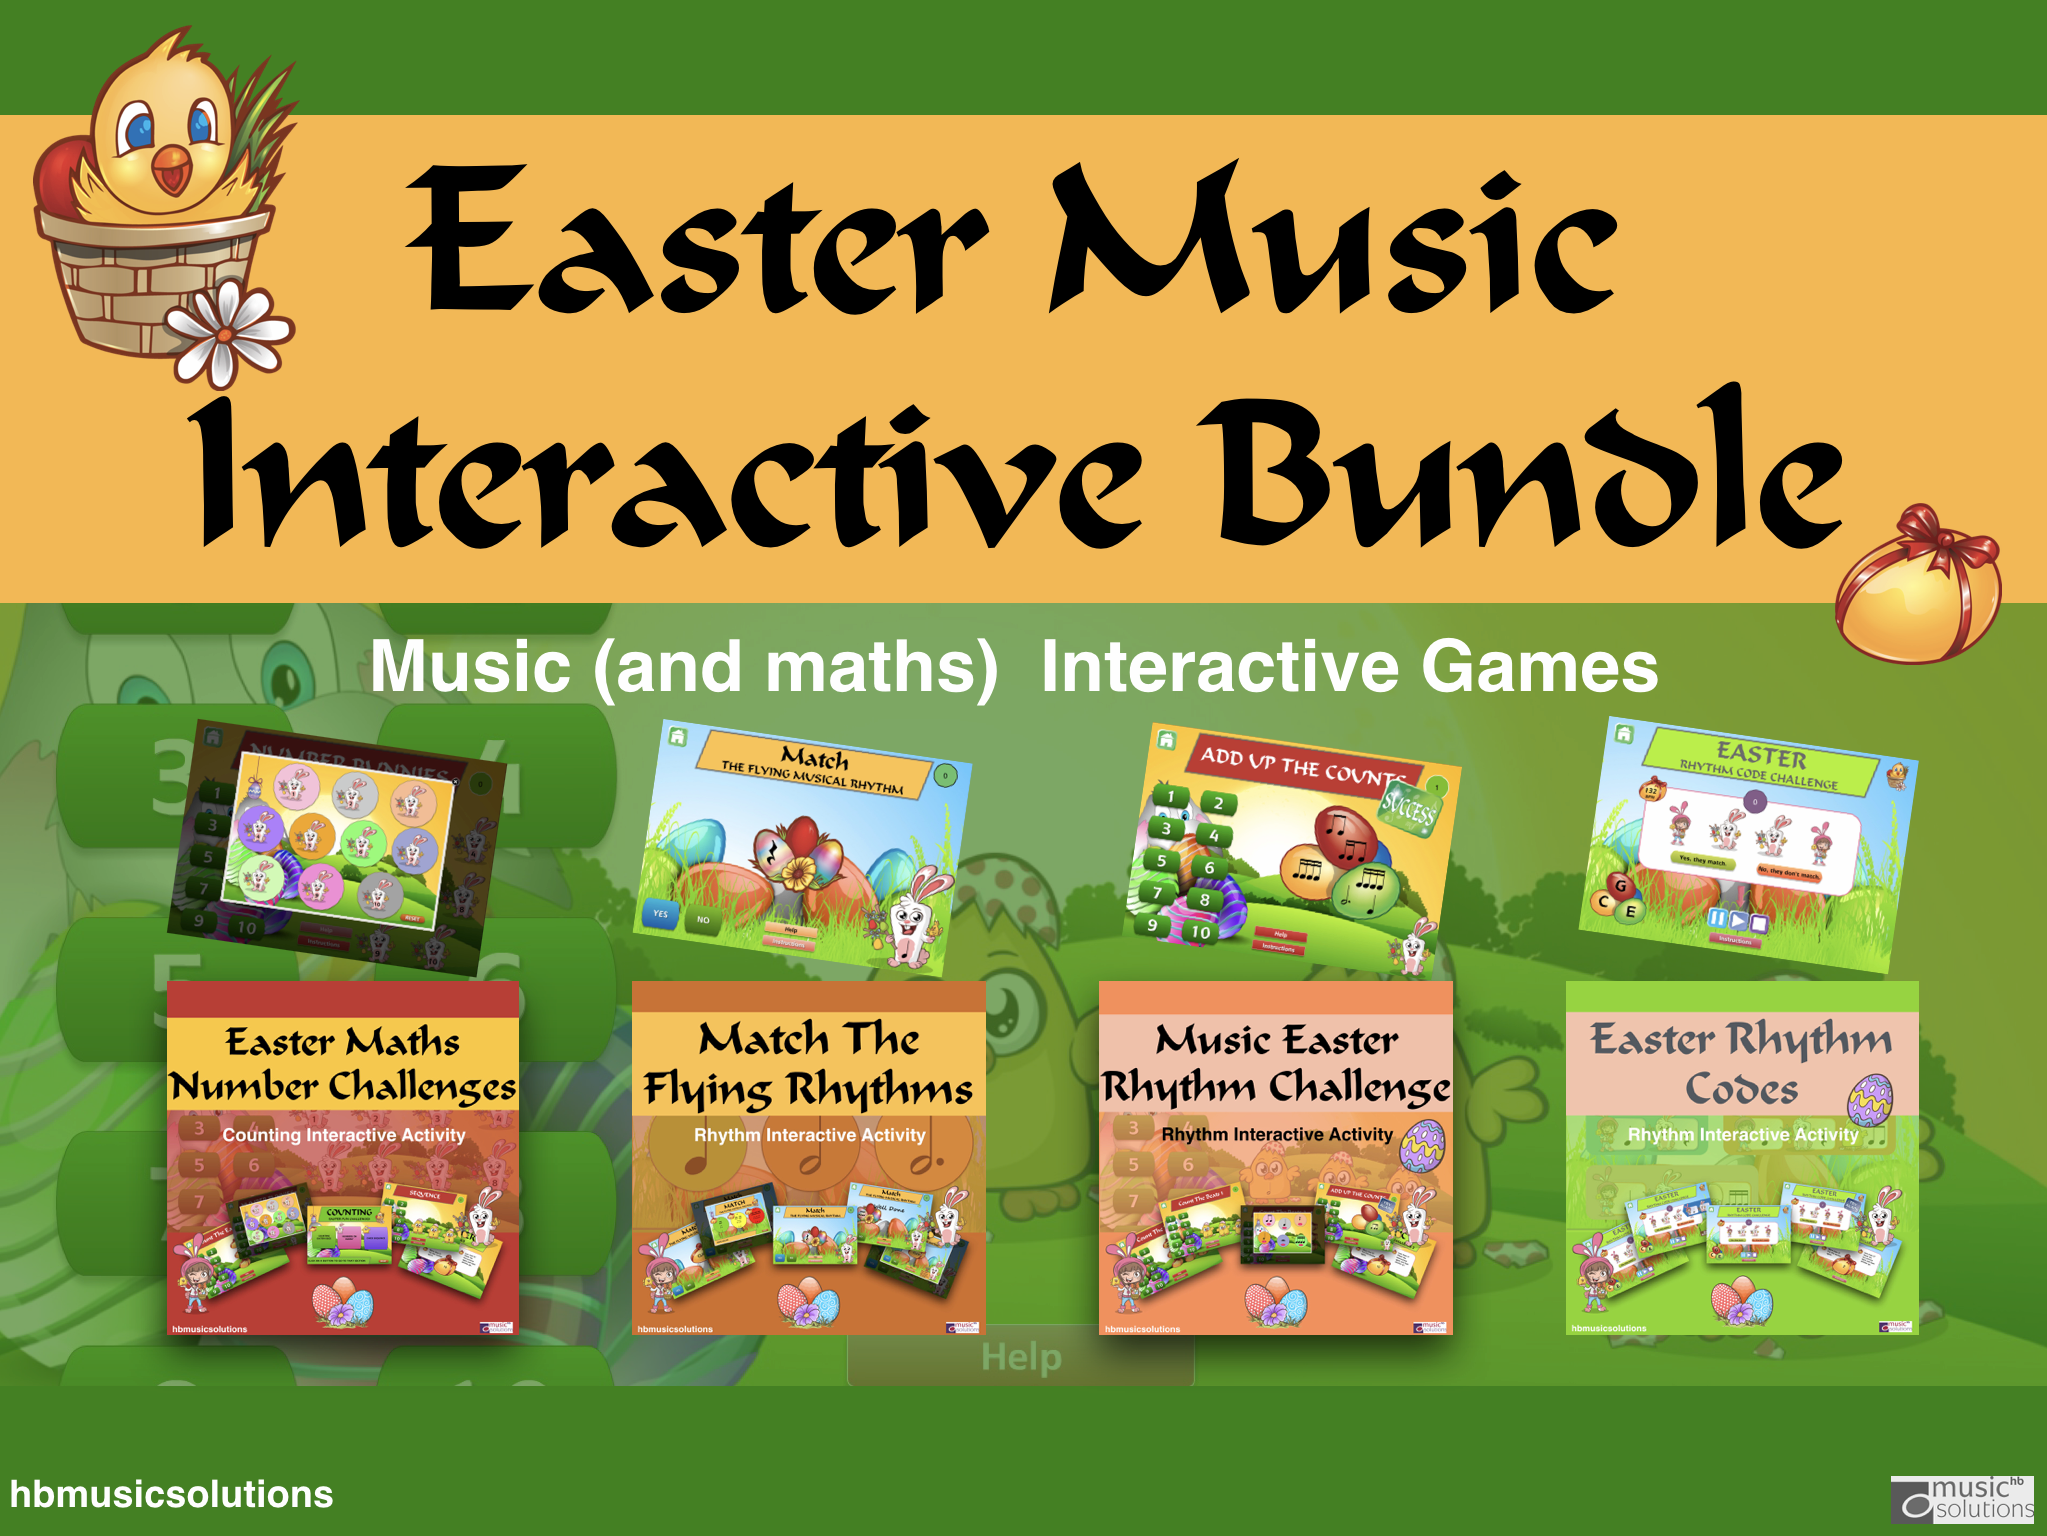 Easter Music Bundle+